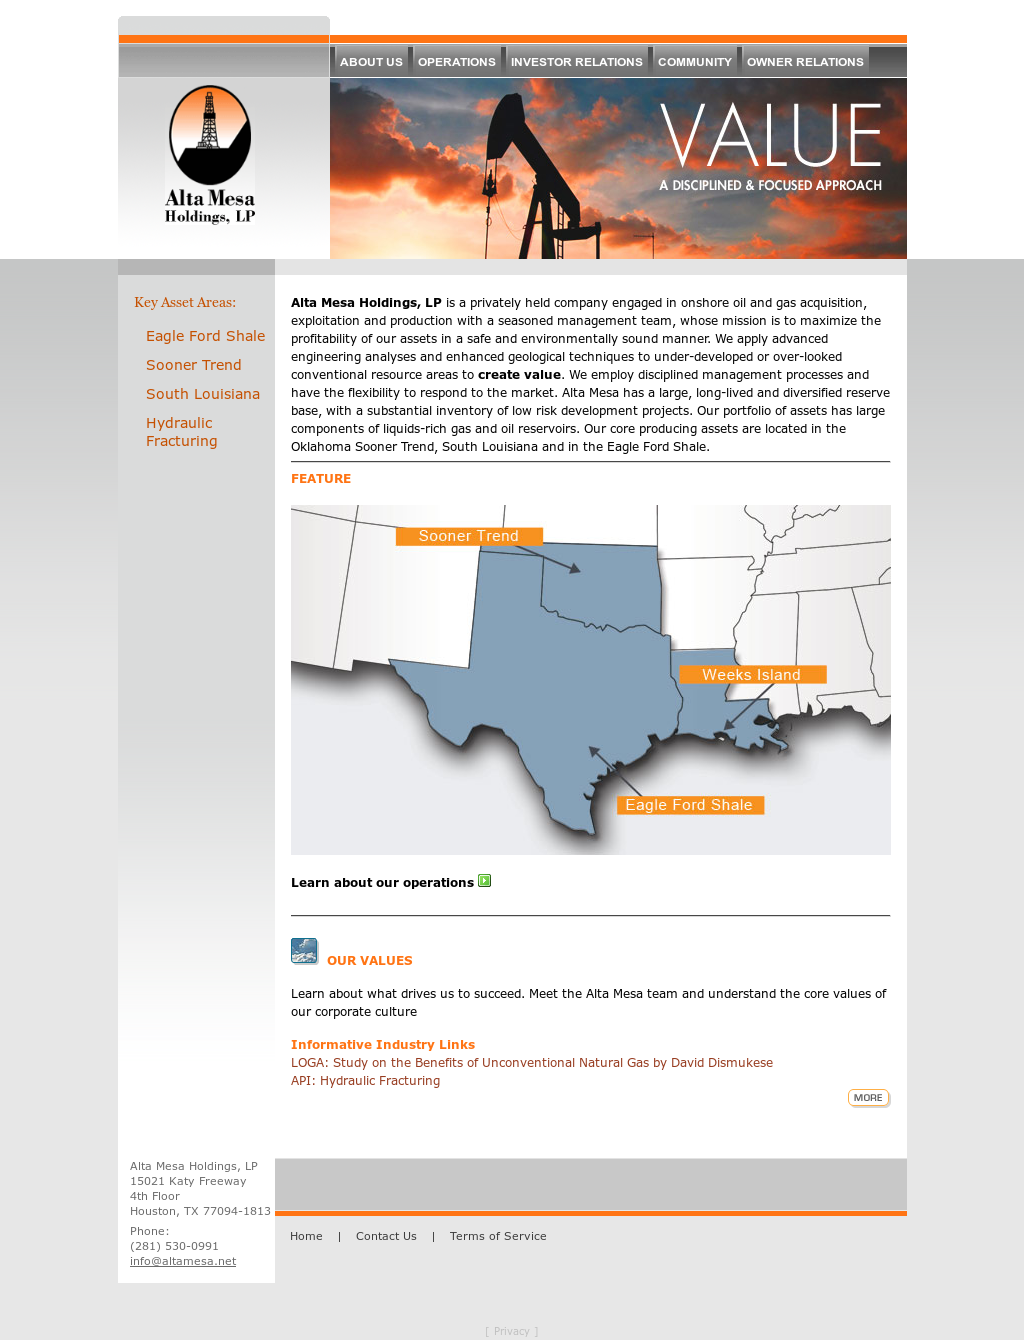 Alta Mesa Resources Competitors, Revenue and Employees - Owler